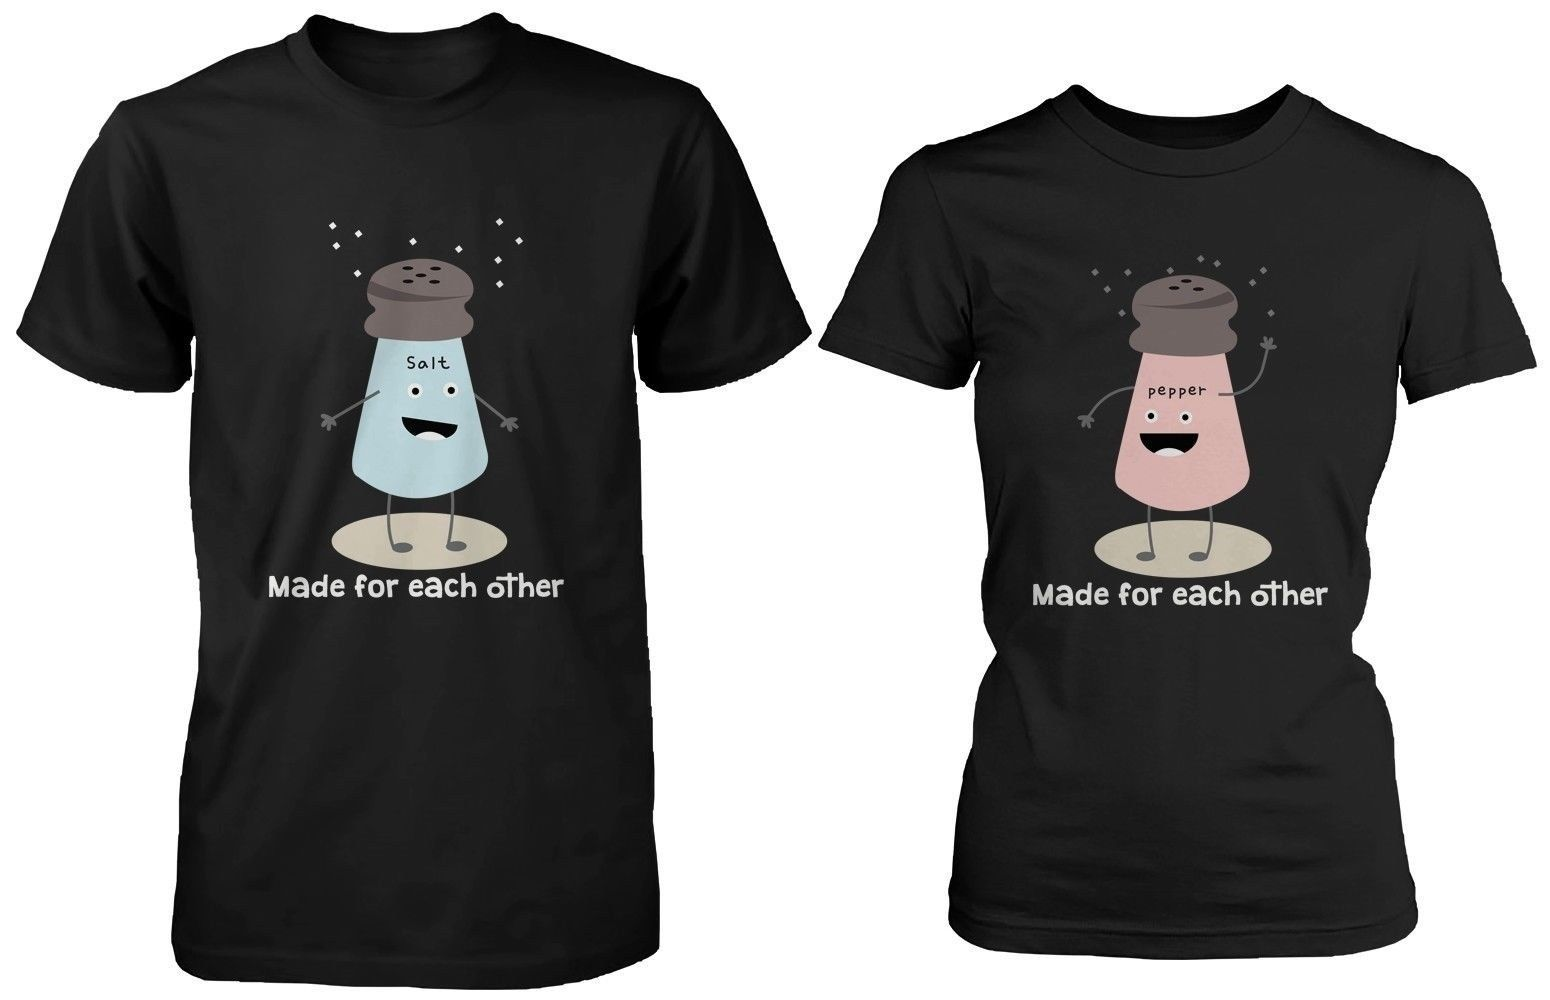 e63ce50488dfc Cute Couple Shirts - Salt   Pepper Made for and 50 similar items